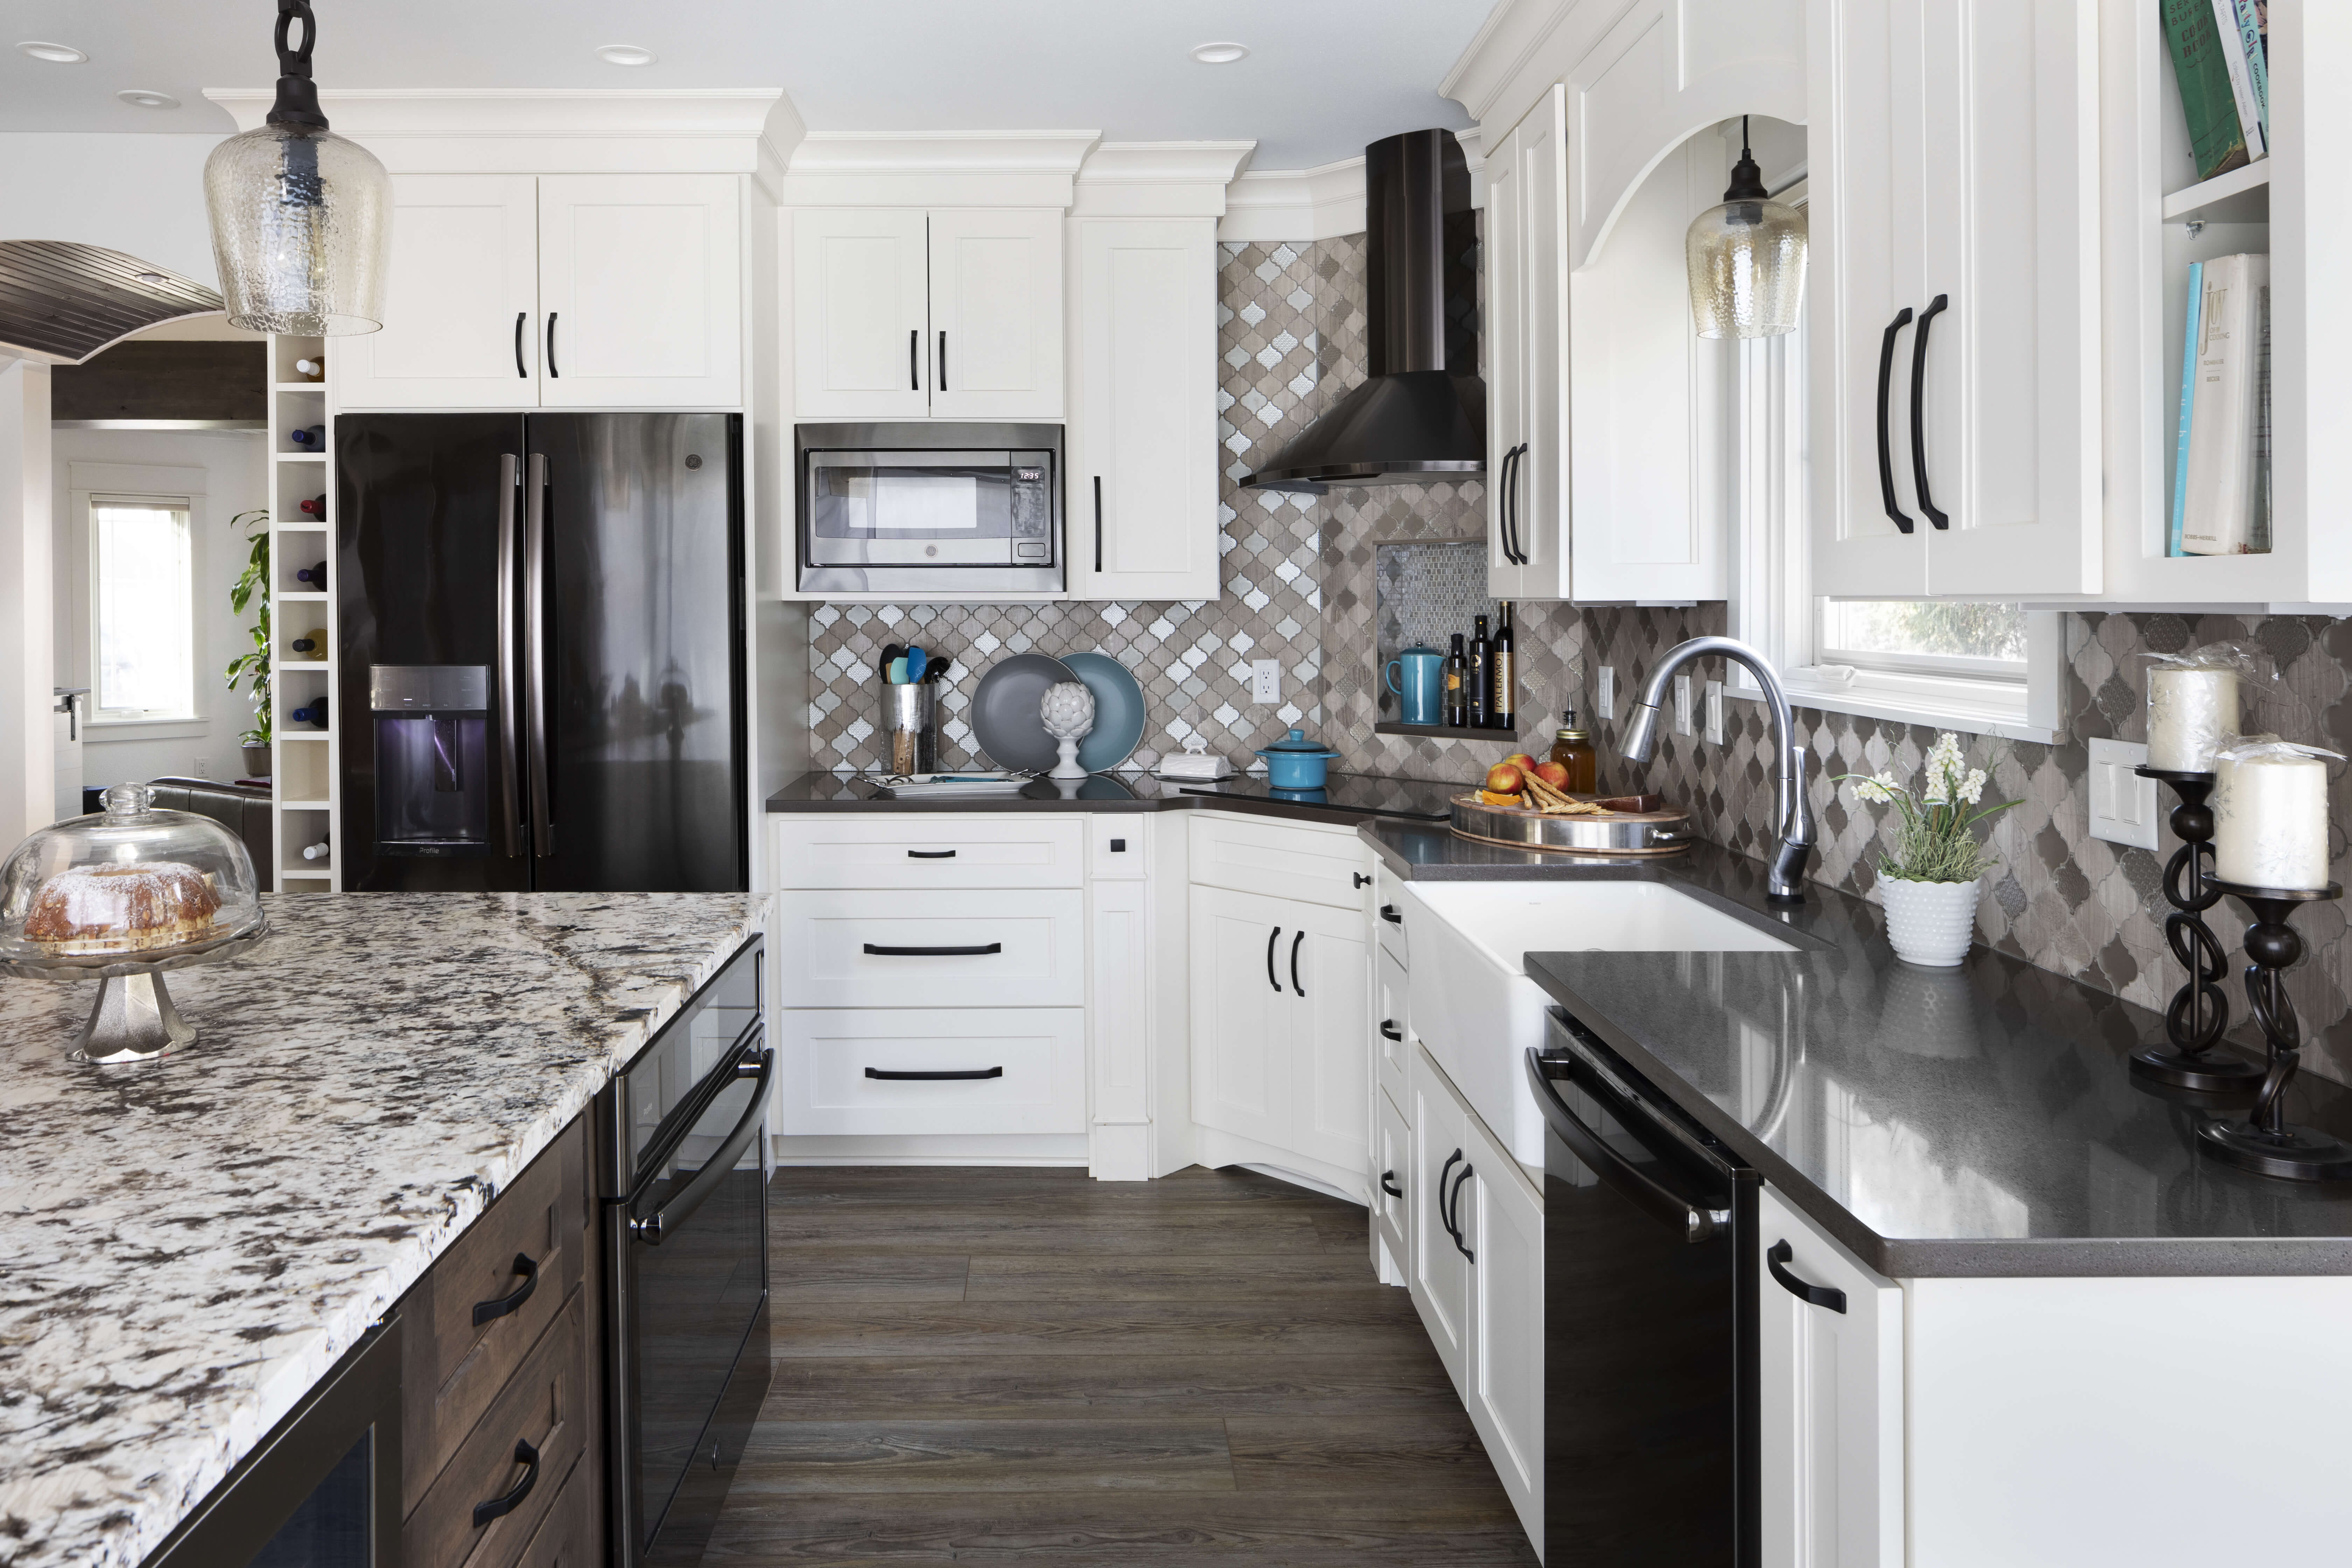 A kitchen remodel with a combination of white painted cabinets and a gray stained kitchen island featuring black countertops and black staineless steel appliances.